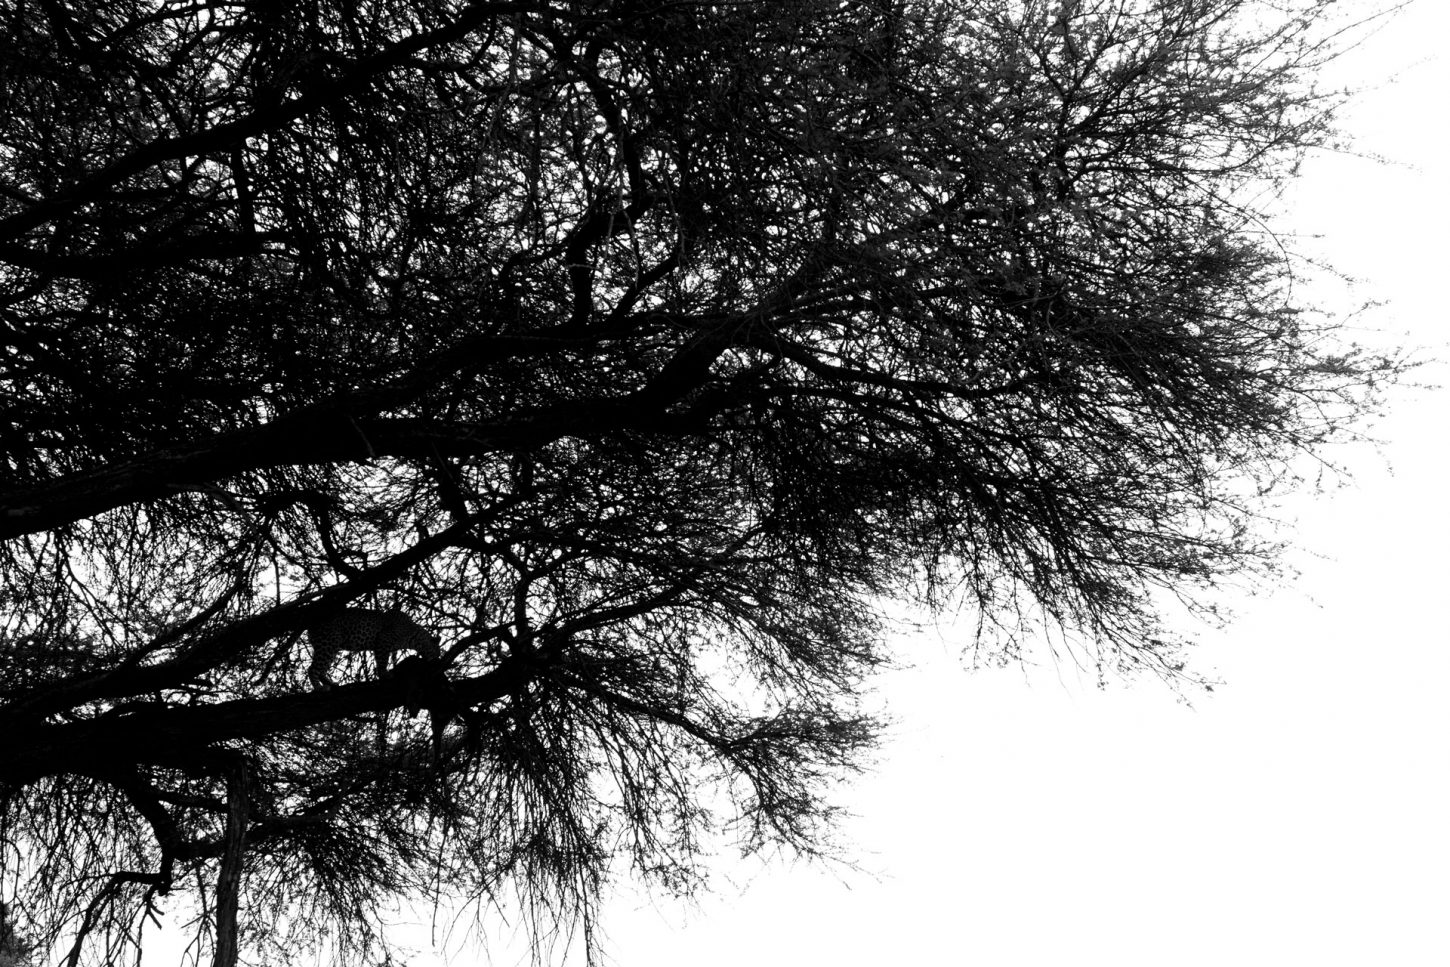 Silhouette of leopard in a tree in black and white